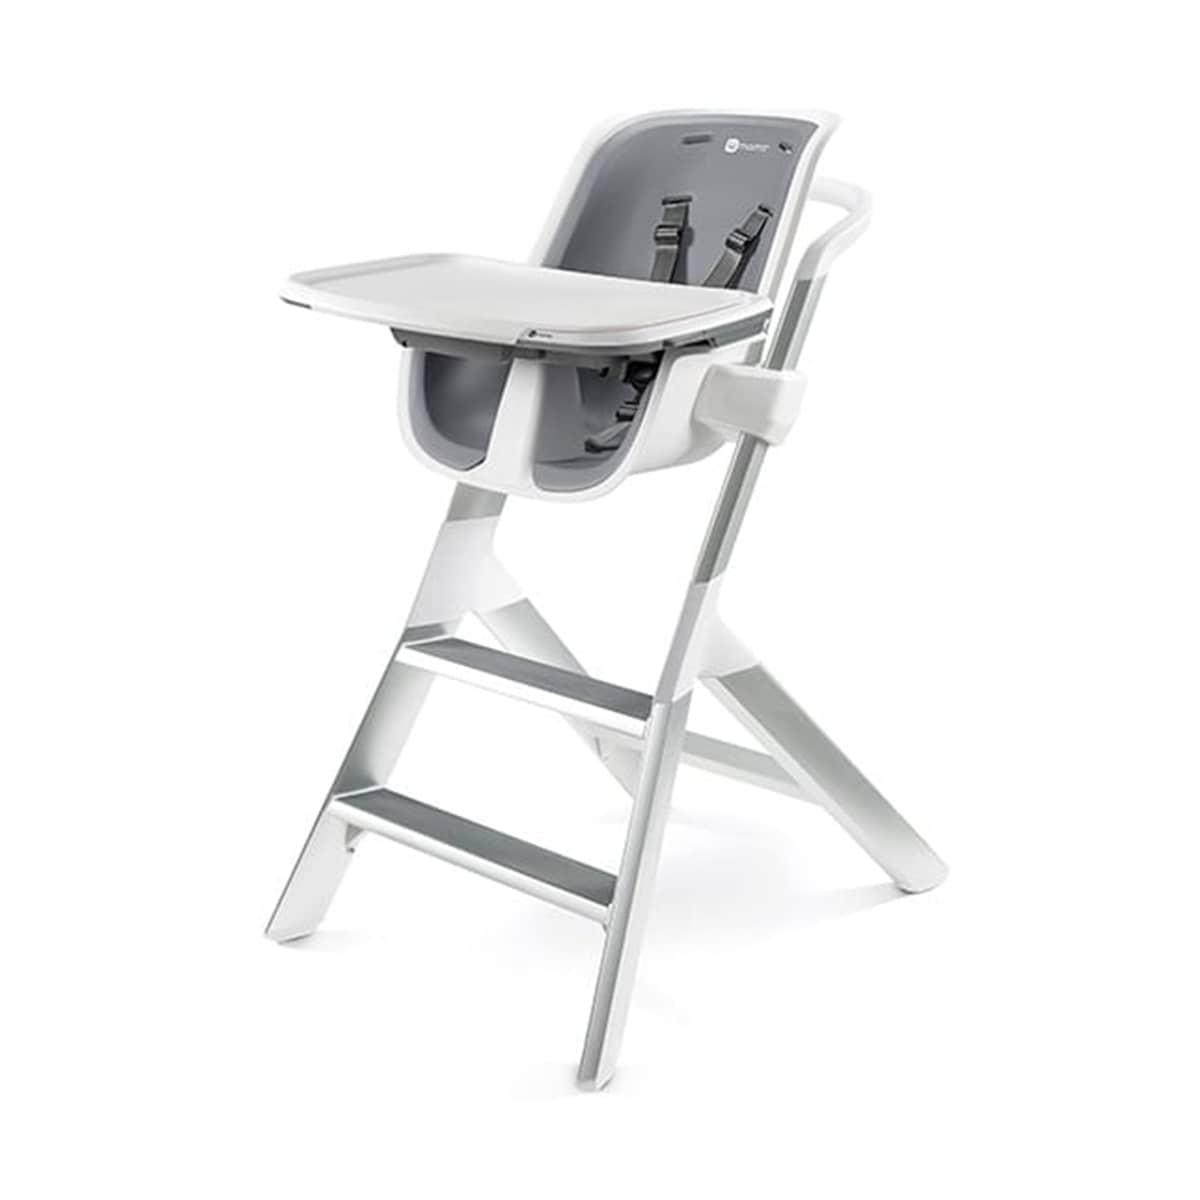 The Most Stylish and Easy-to-Clean High Chairs: gallery image 5